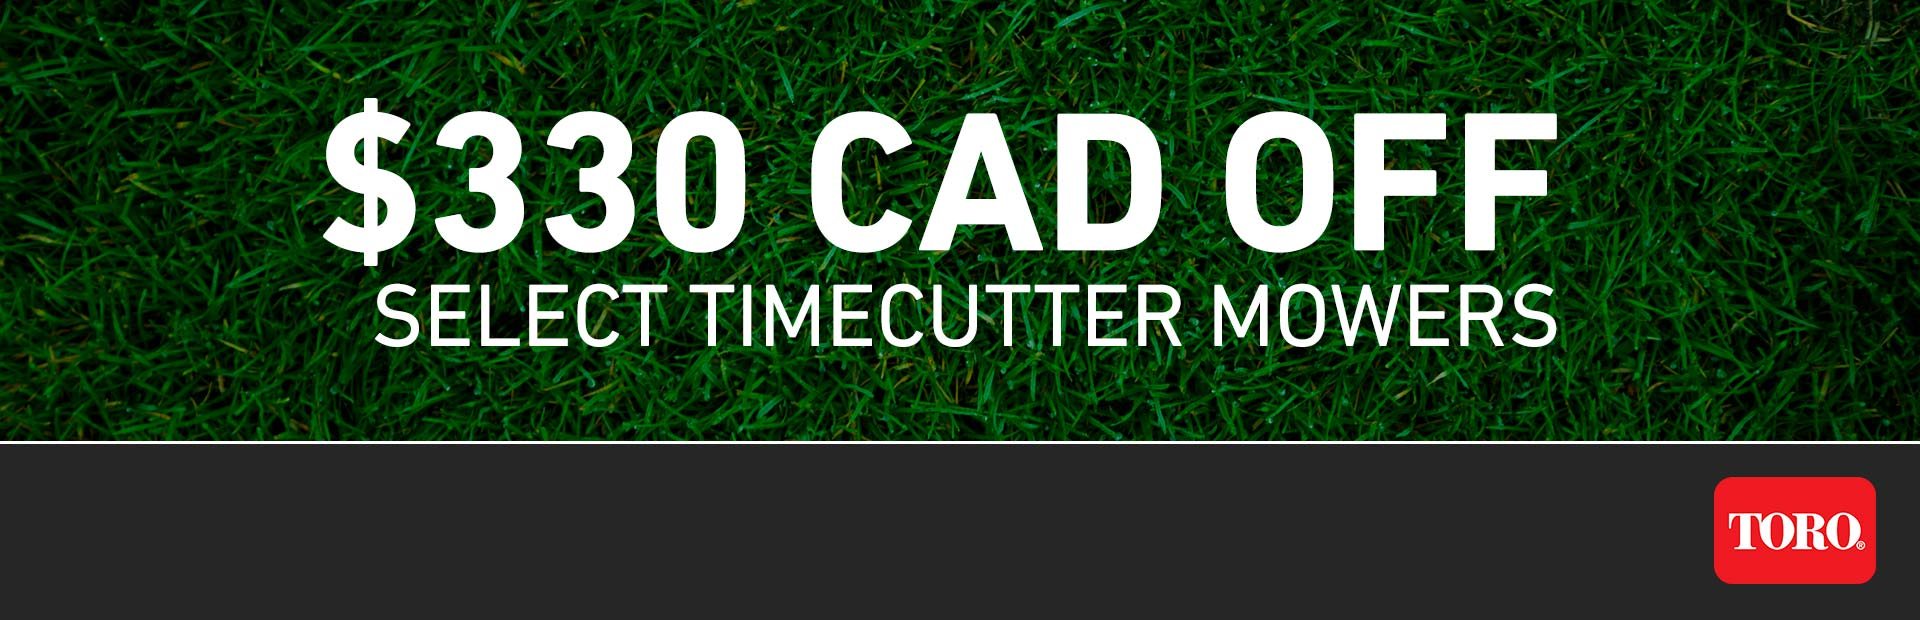 Toro: $330 CAD OFF Select TimeCutter Mowers